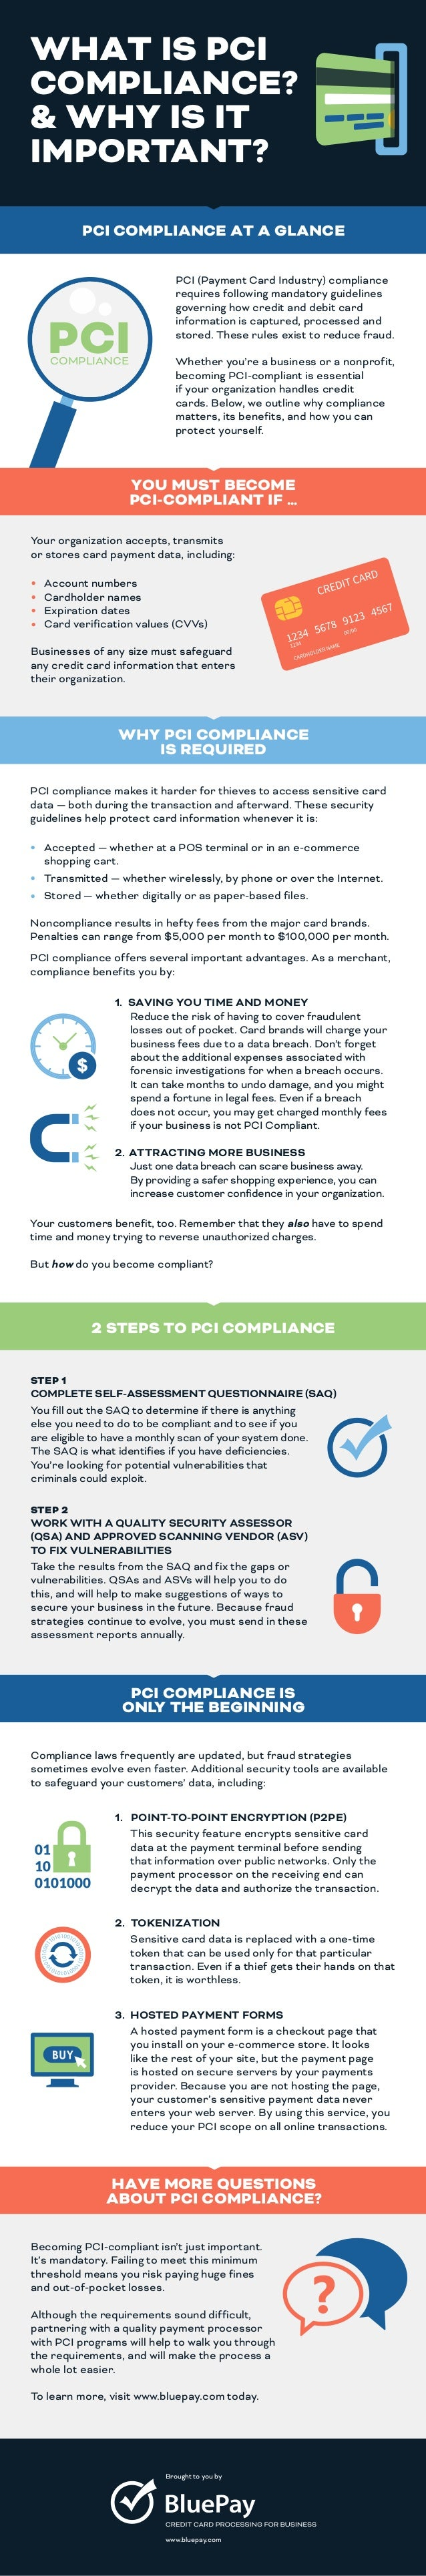 The PCI Compliance Process